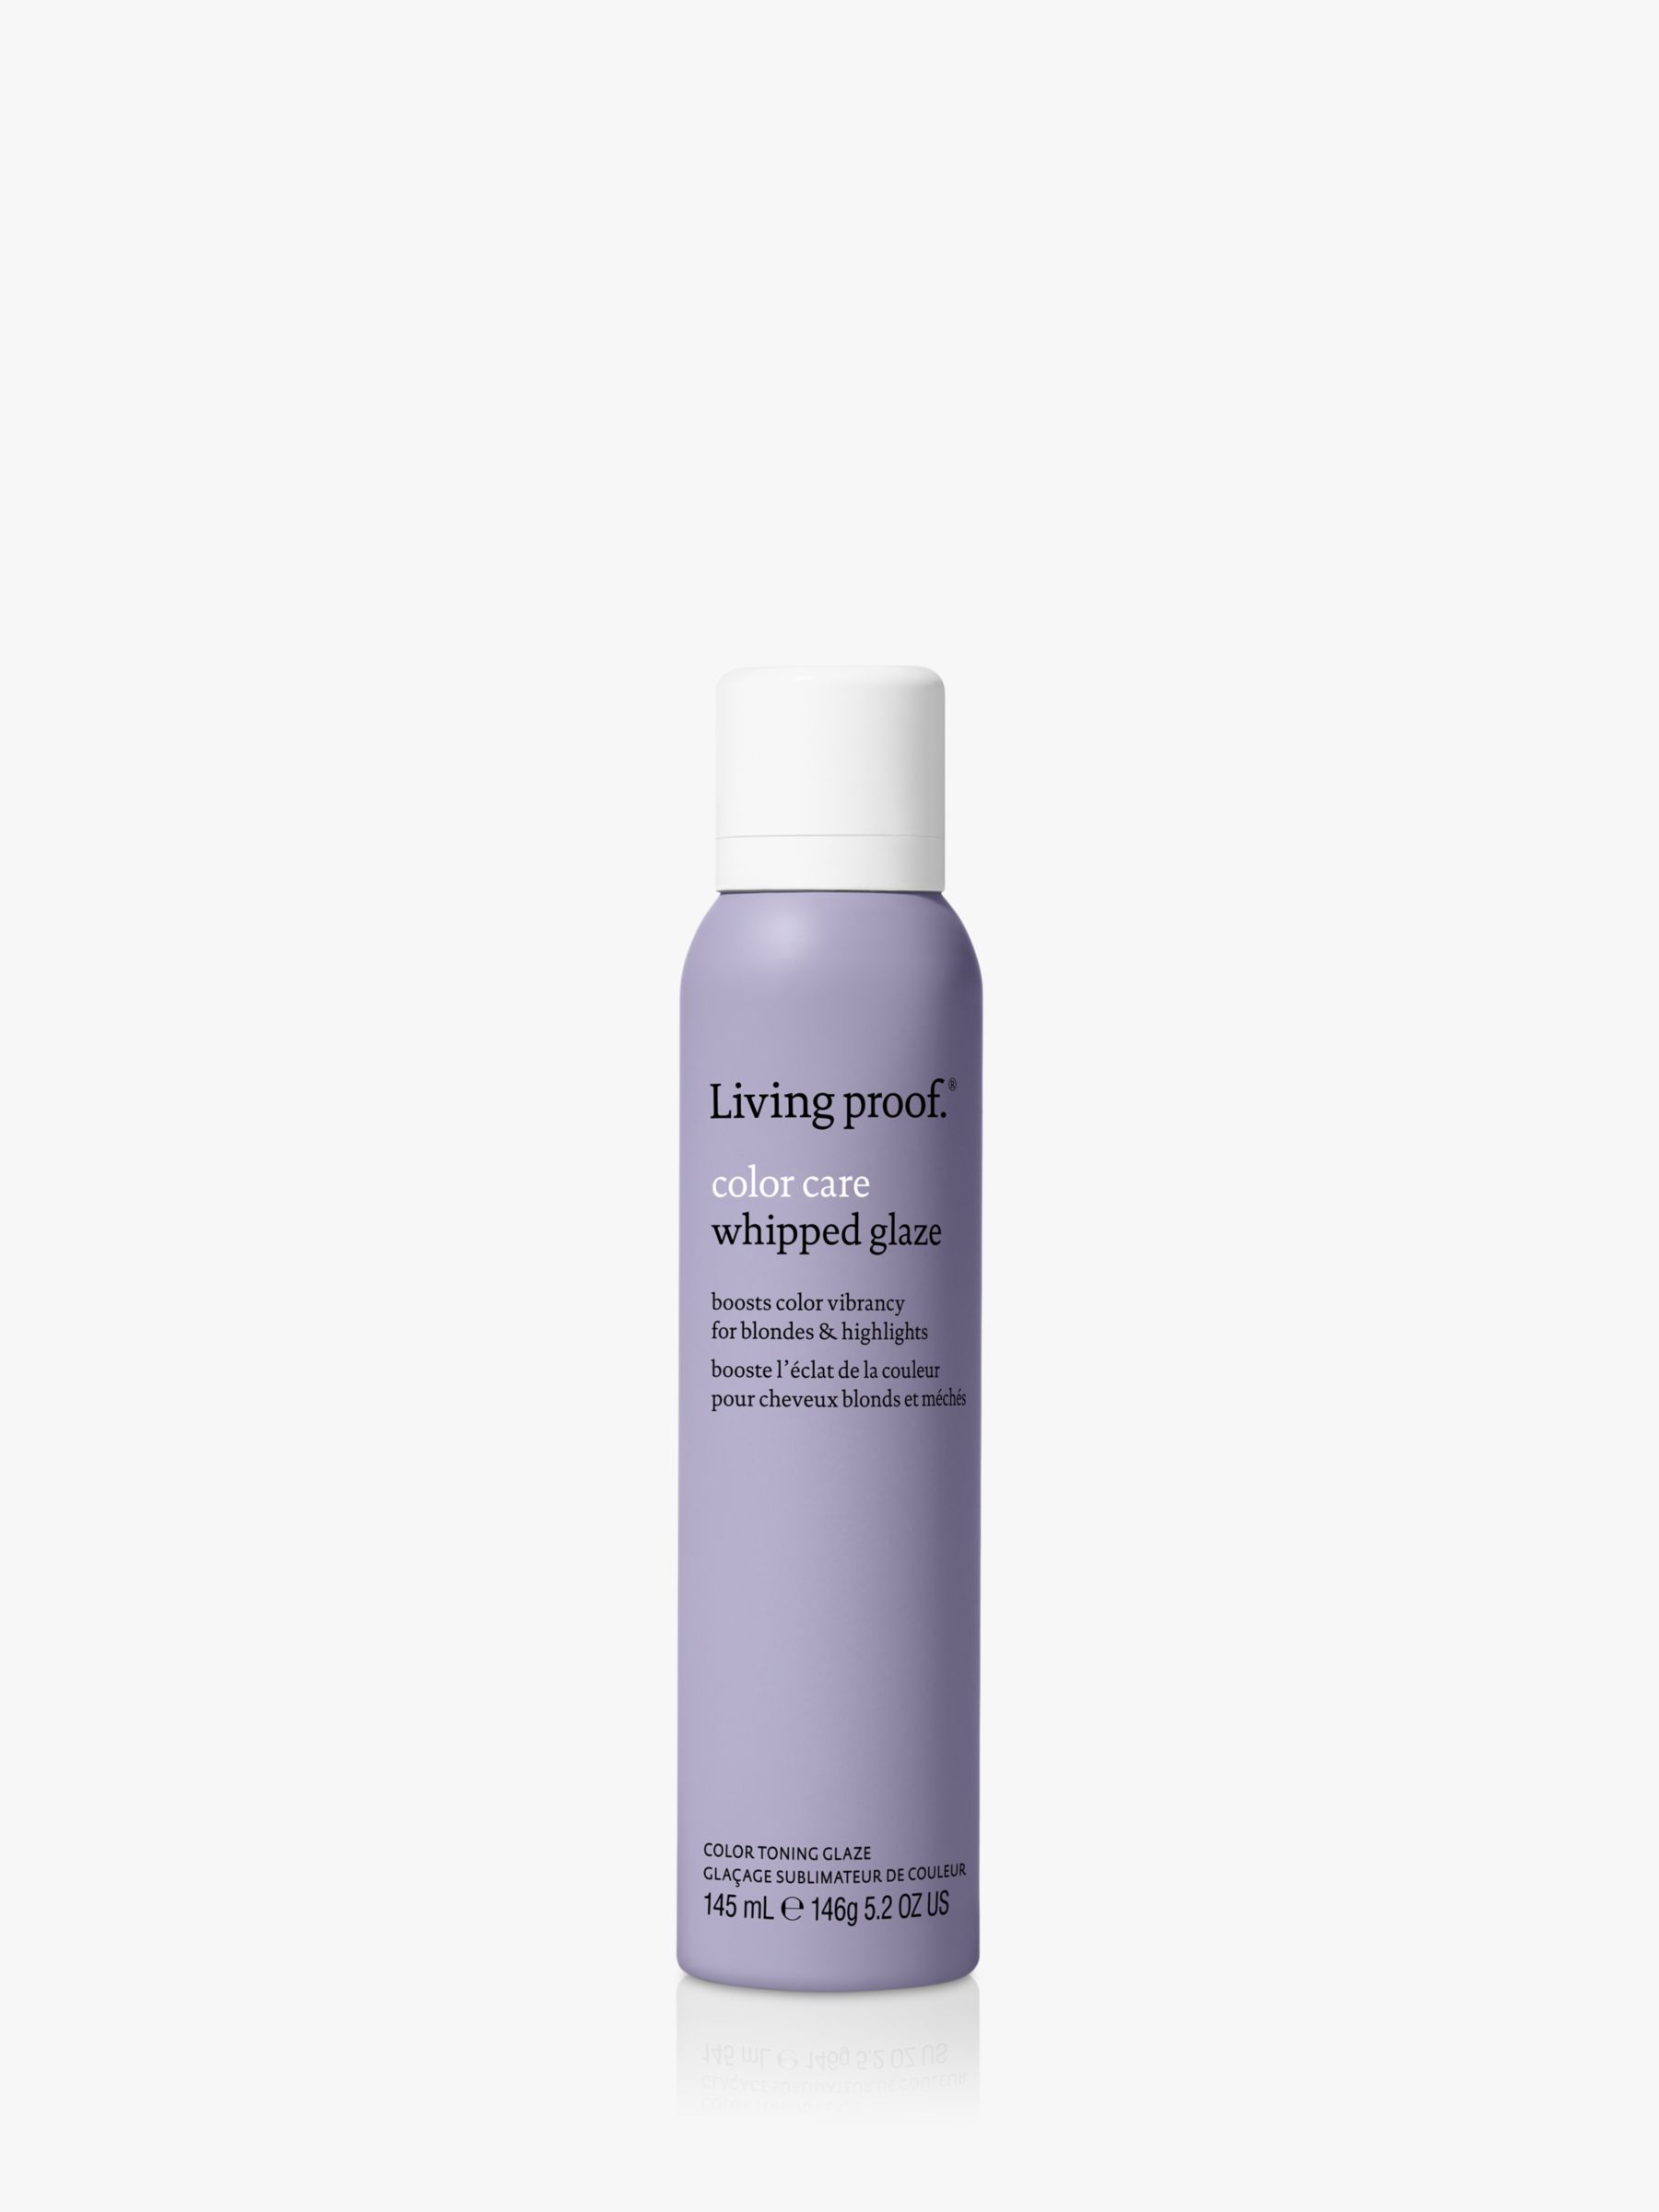 Living Proof Living Proof Color Care Whipped Glaze, Light, 145ml